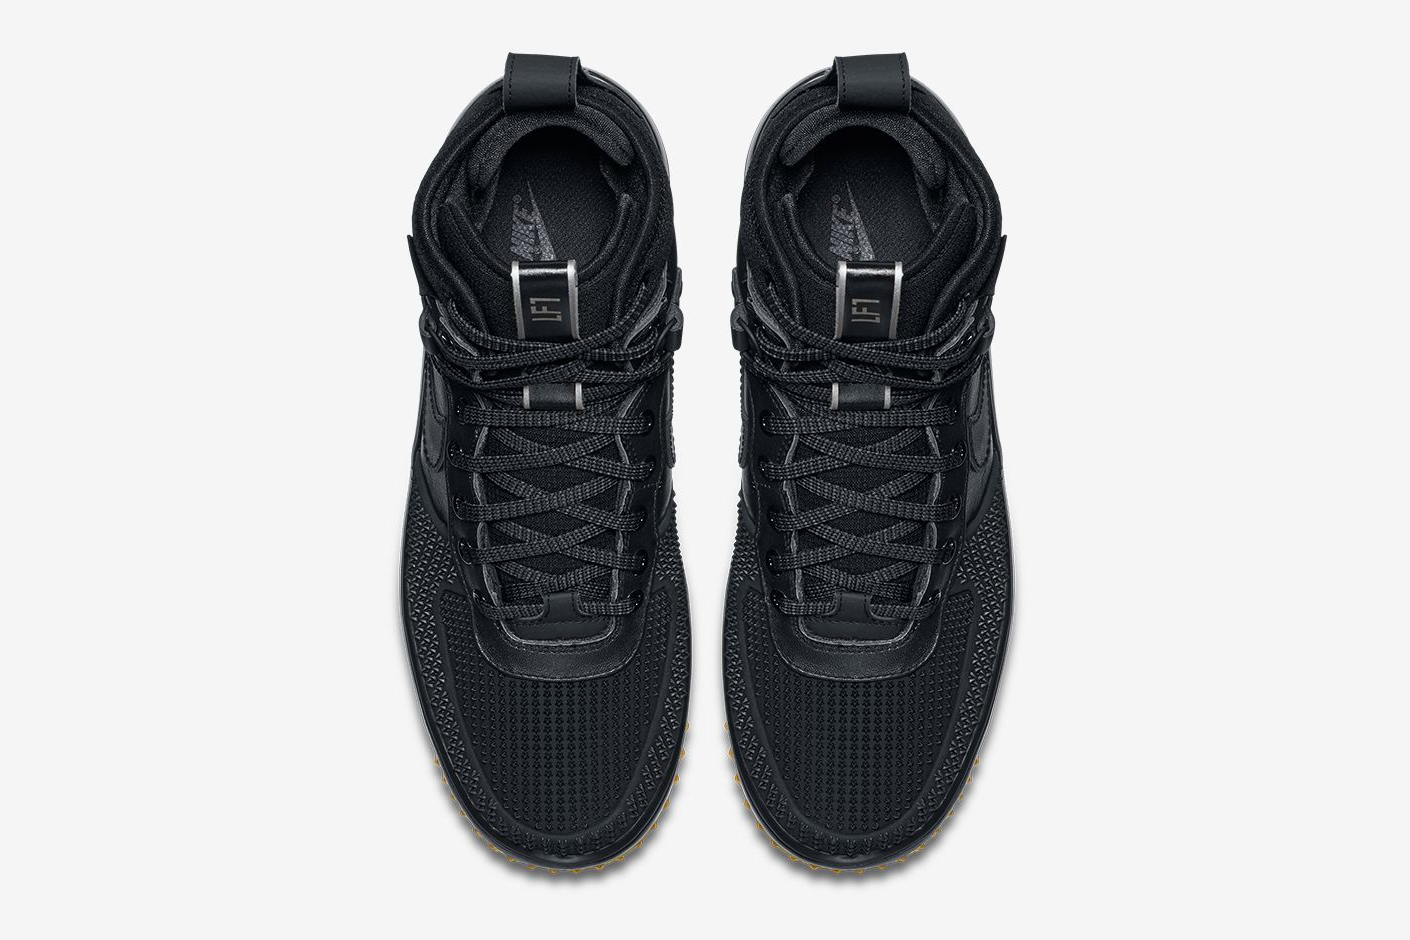 nike-lunar-force-1-duckboot-fall-2016-03.jpg